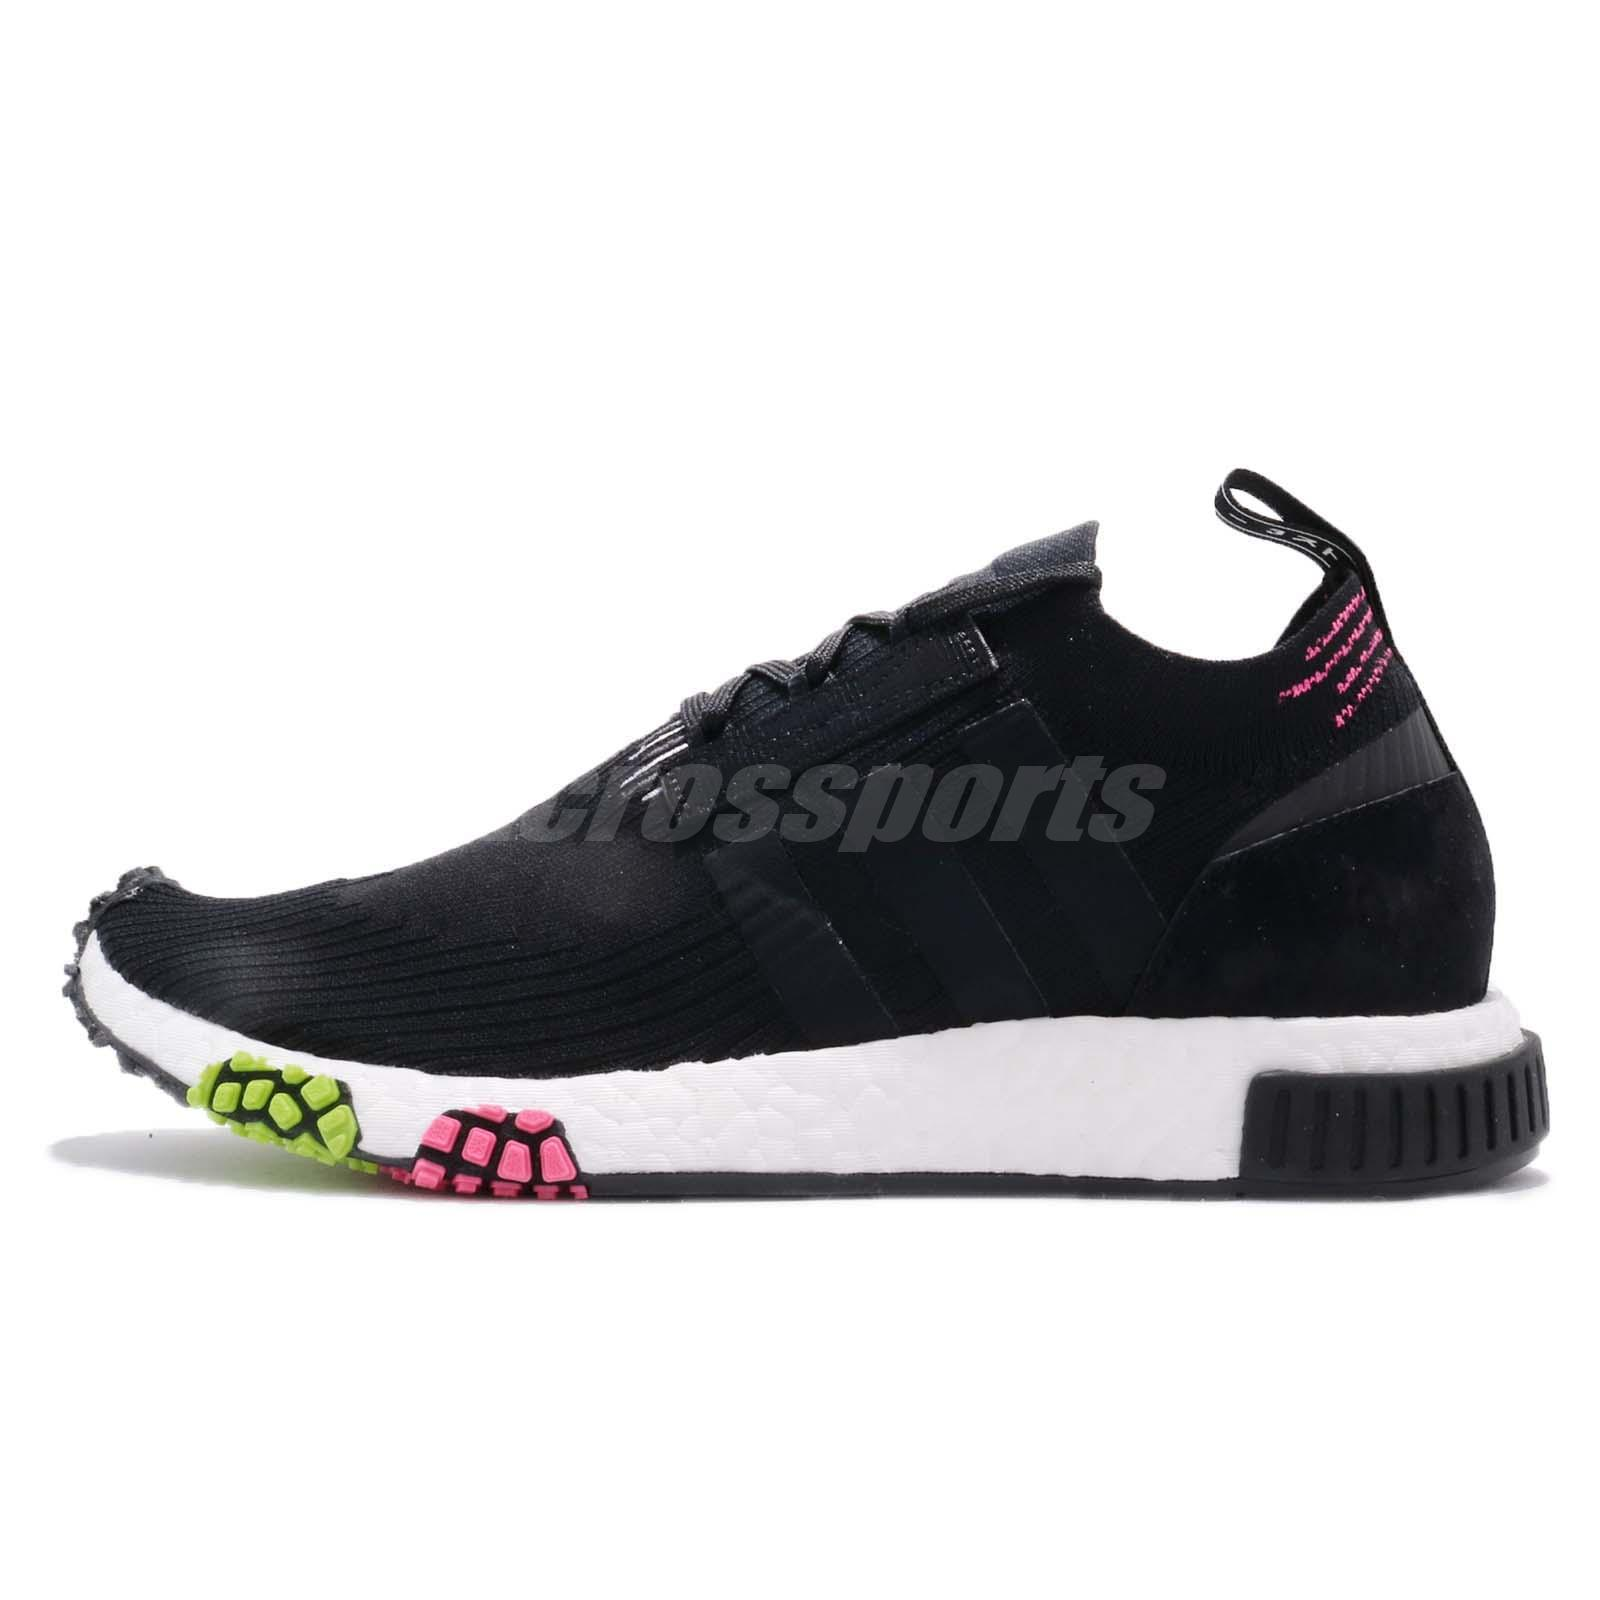 finest selection 30c26 1ad28 adidas Originals NMD Racer PK PrimeKnit Black Pink Green Men Running Shoe  CQ2441